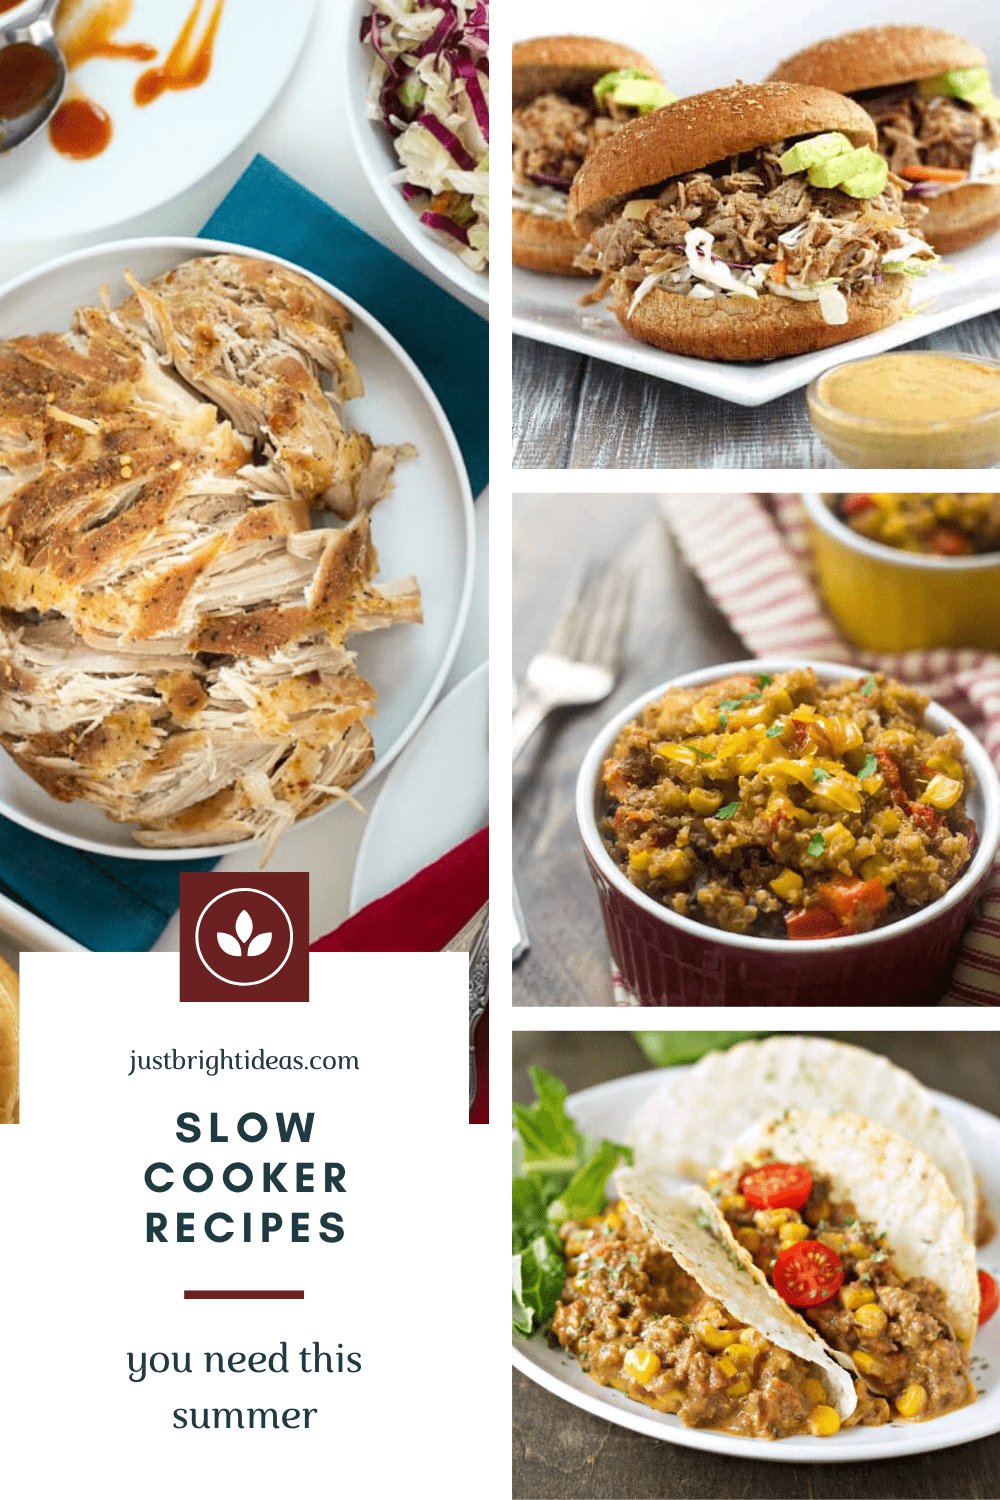 These summer slow cooker recipes are easy to make and perfect for when it's just too hot outside to be in the kitchen making dinner!